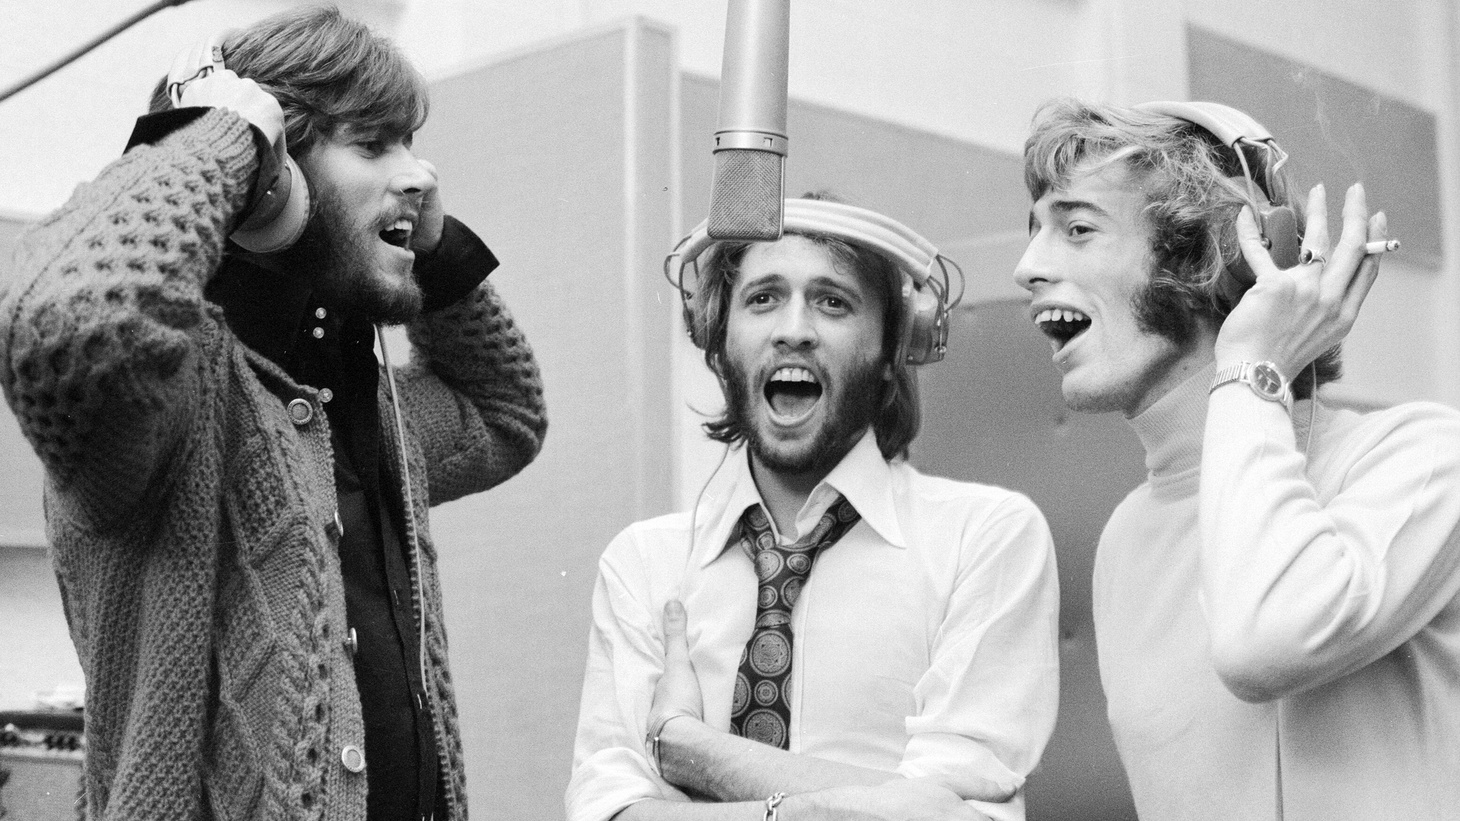 (L to R) Barry Gibb, Maurice Gibb, and Robin Gibb were reunited in the recording studio together at Soho London September 3, 1970.